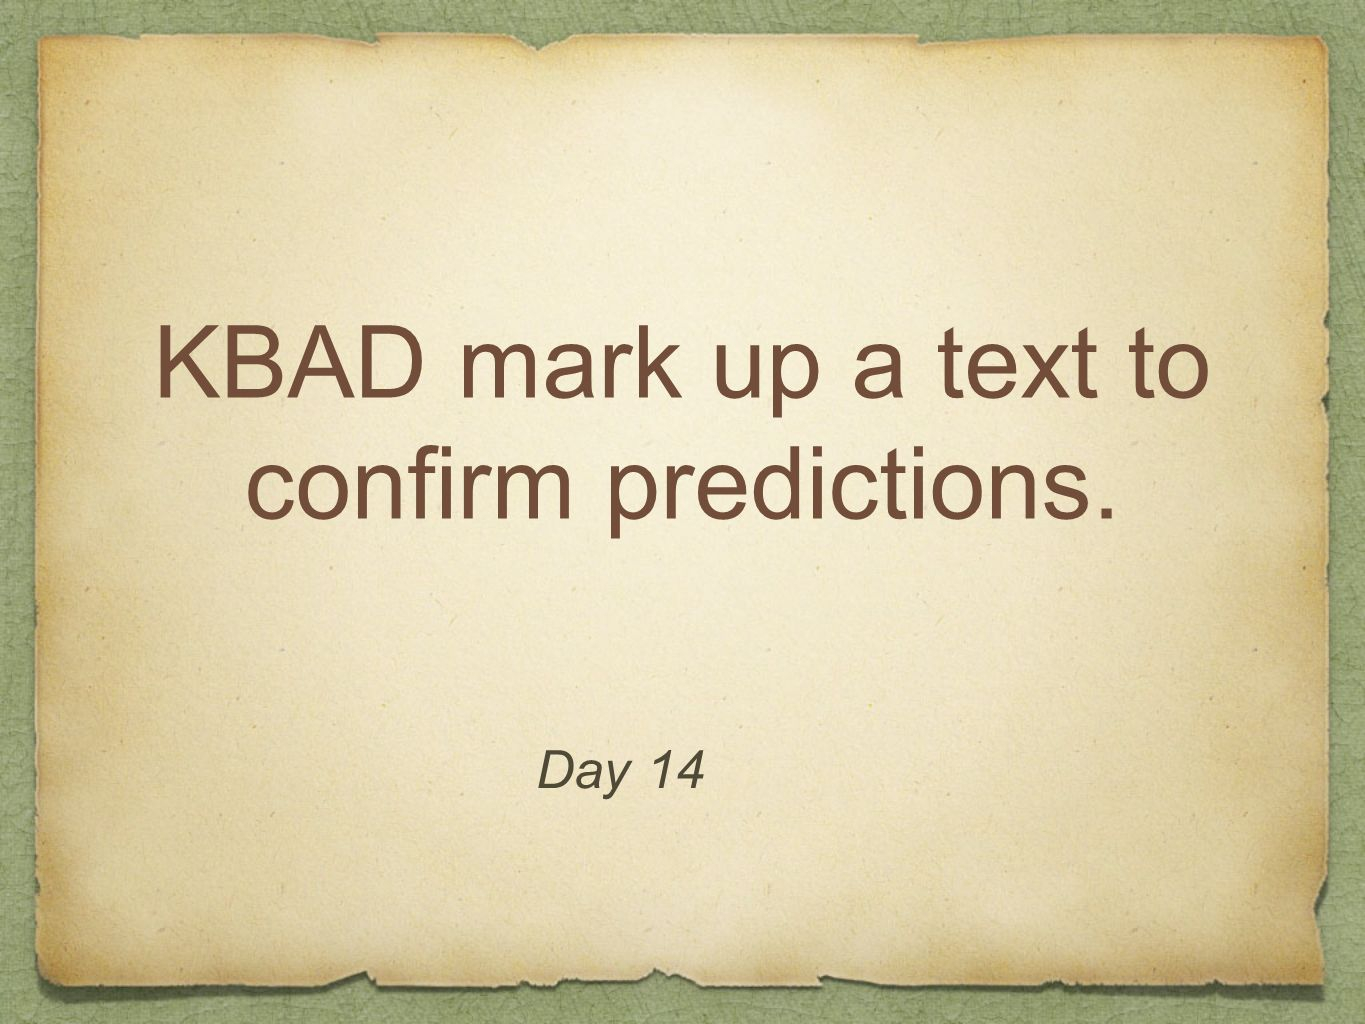 KBAD mark up a text to confirm predictions.